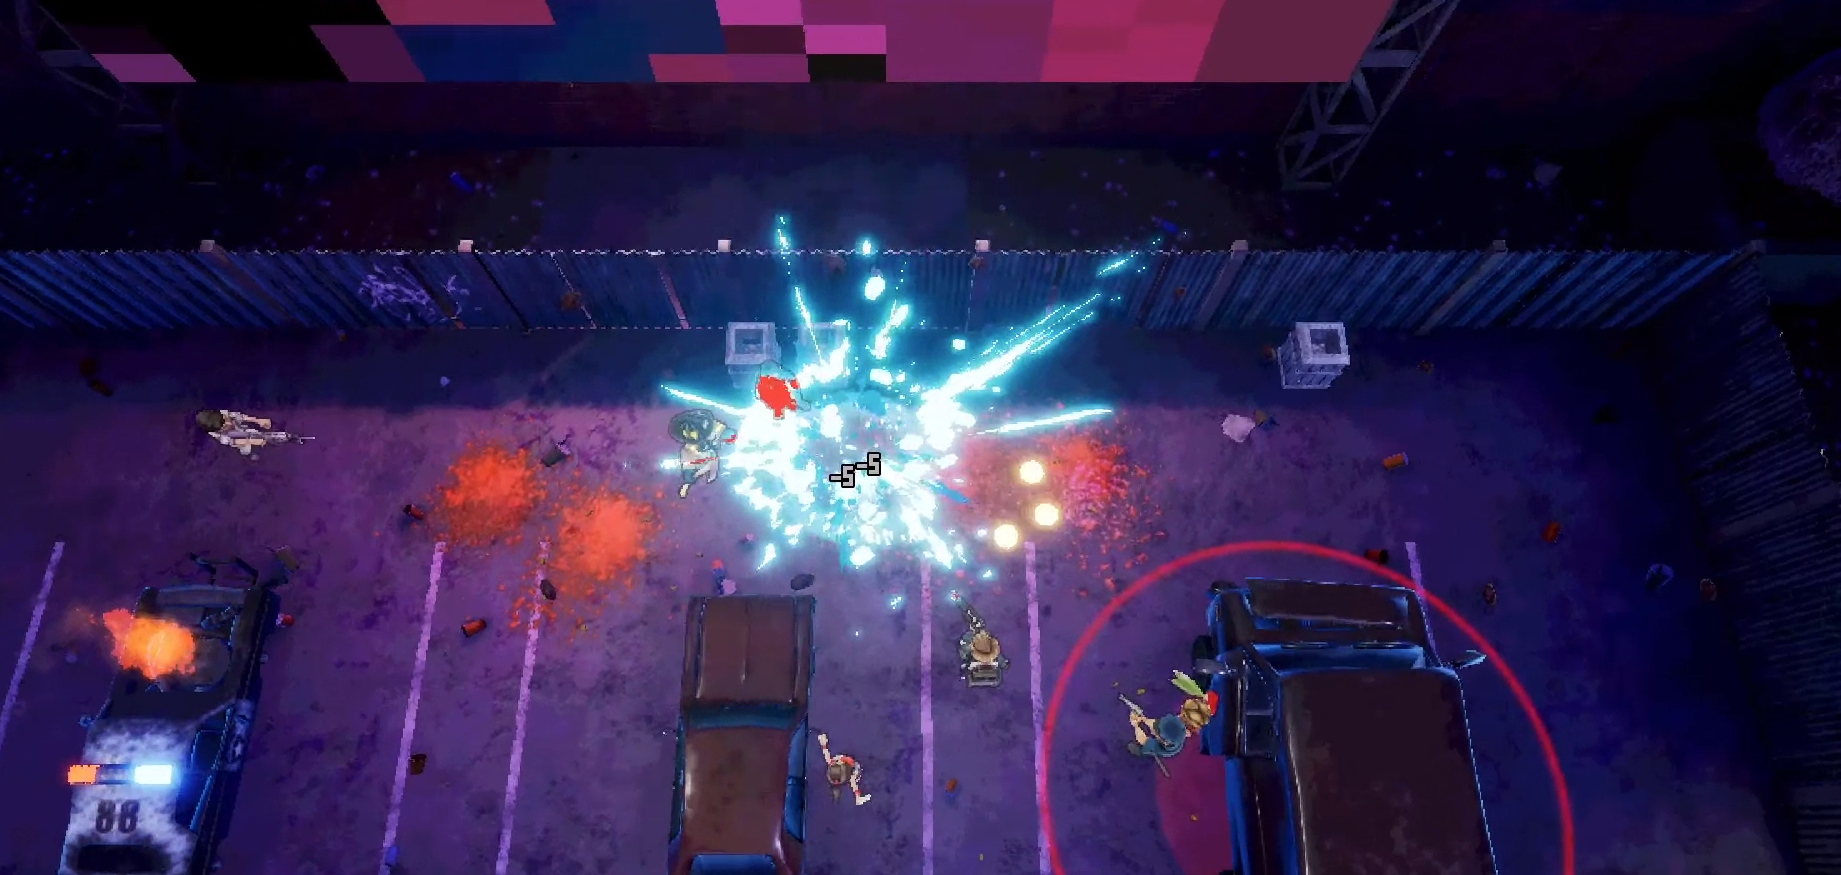 HyperParasite announced for Nintendo Switch